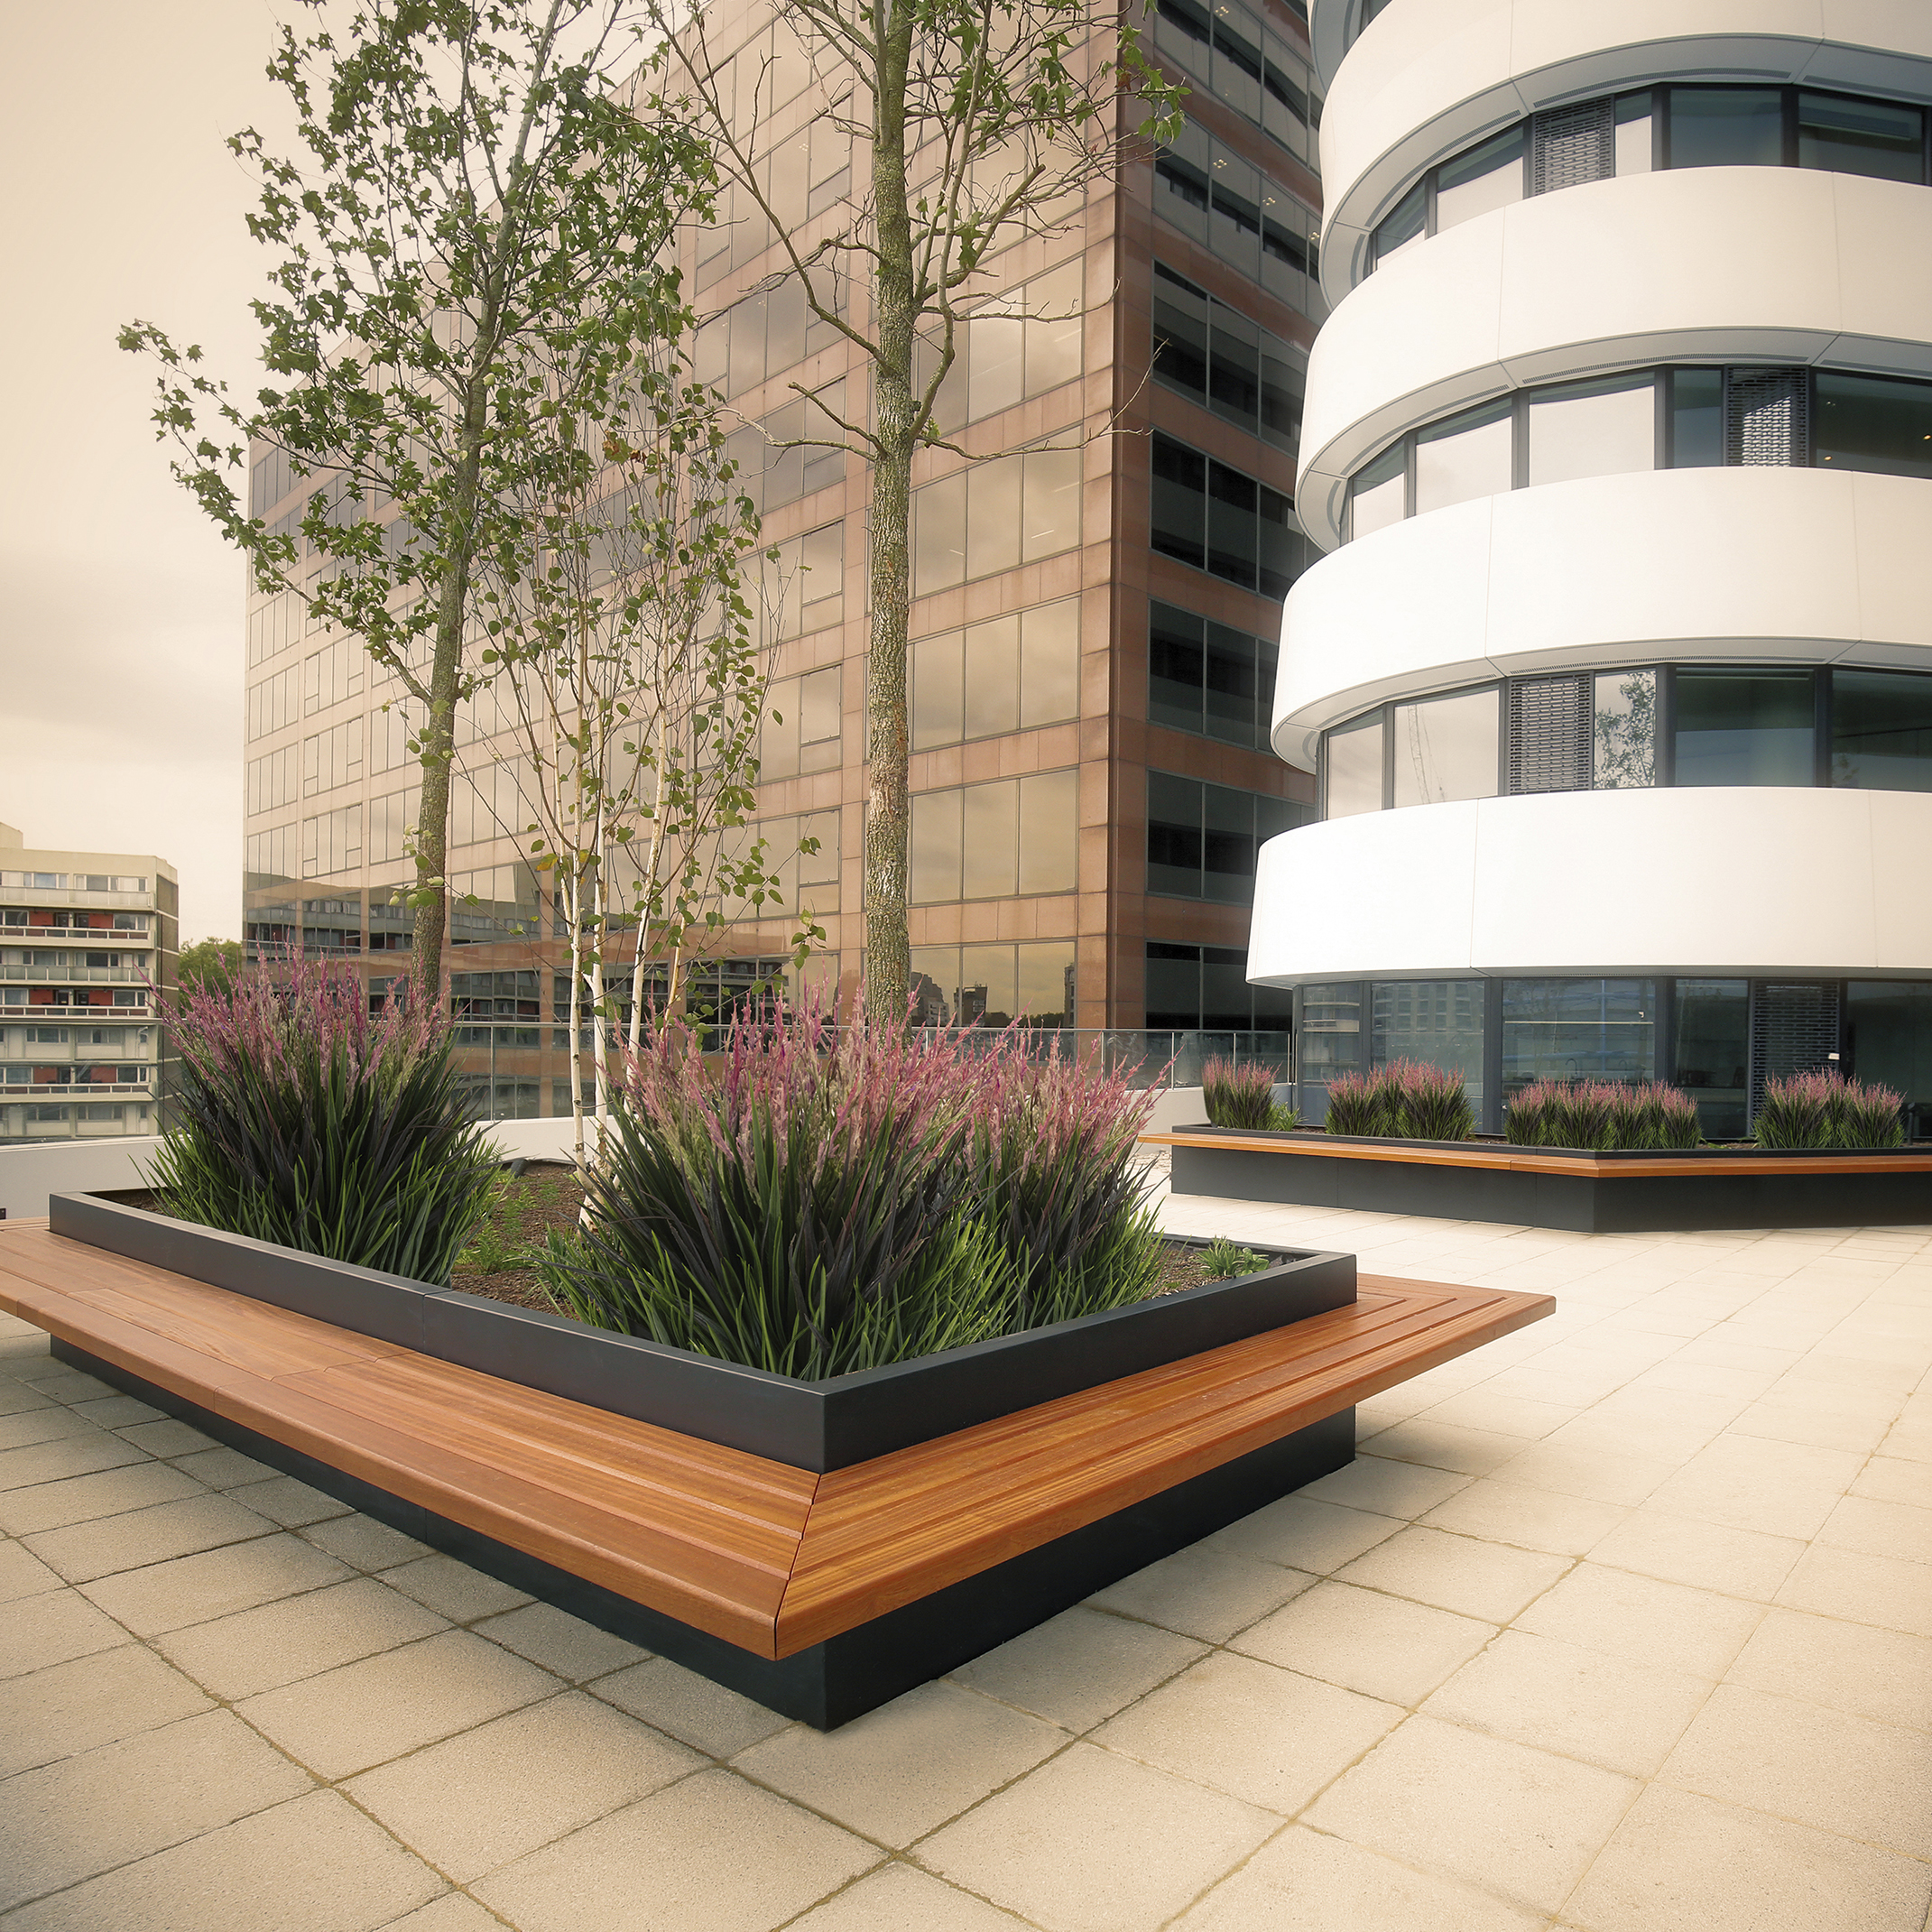 Floating Bench Quality Hardwood Timber Seating By Europlanters